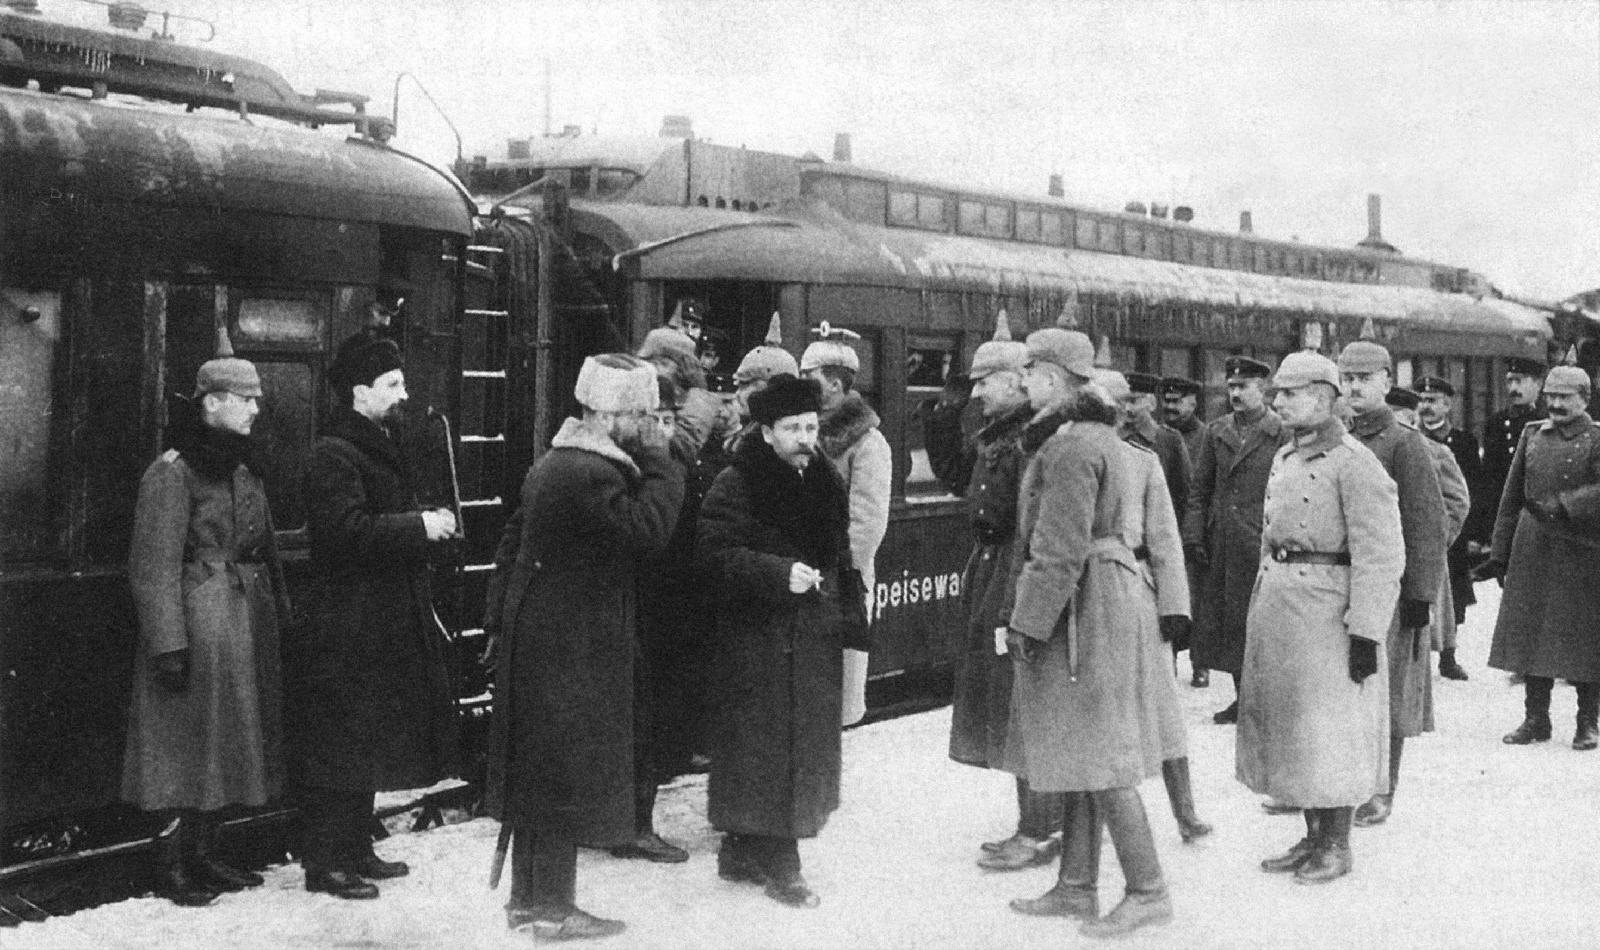 world war 1 contribution to the 1917 russian revolution Russian revolution – november 1917 following the march revolution, in november 1917 russia got the world's first communist government  world war two contact .